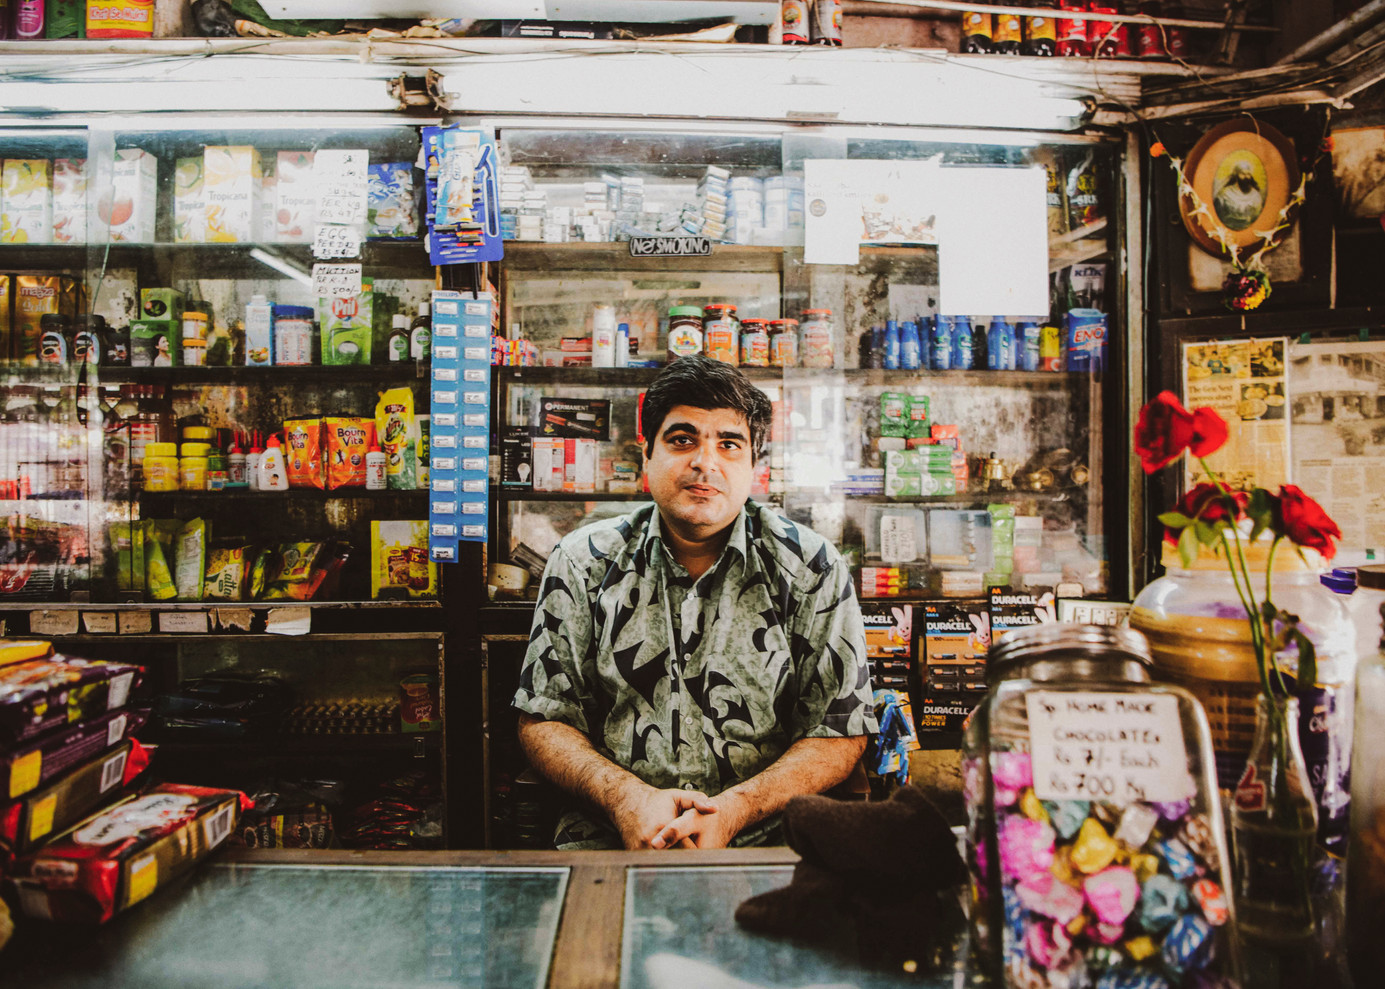 Mirza, son of Agha Nazariyan, at the counter of Cafe Colony at Dadar (East). The diligent owner sits at the workstation, strategically located from where he can manage the staff. The owners of Irani cafes are famous for their no-nonsense attitude as they get work done with minimum fuss.